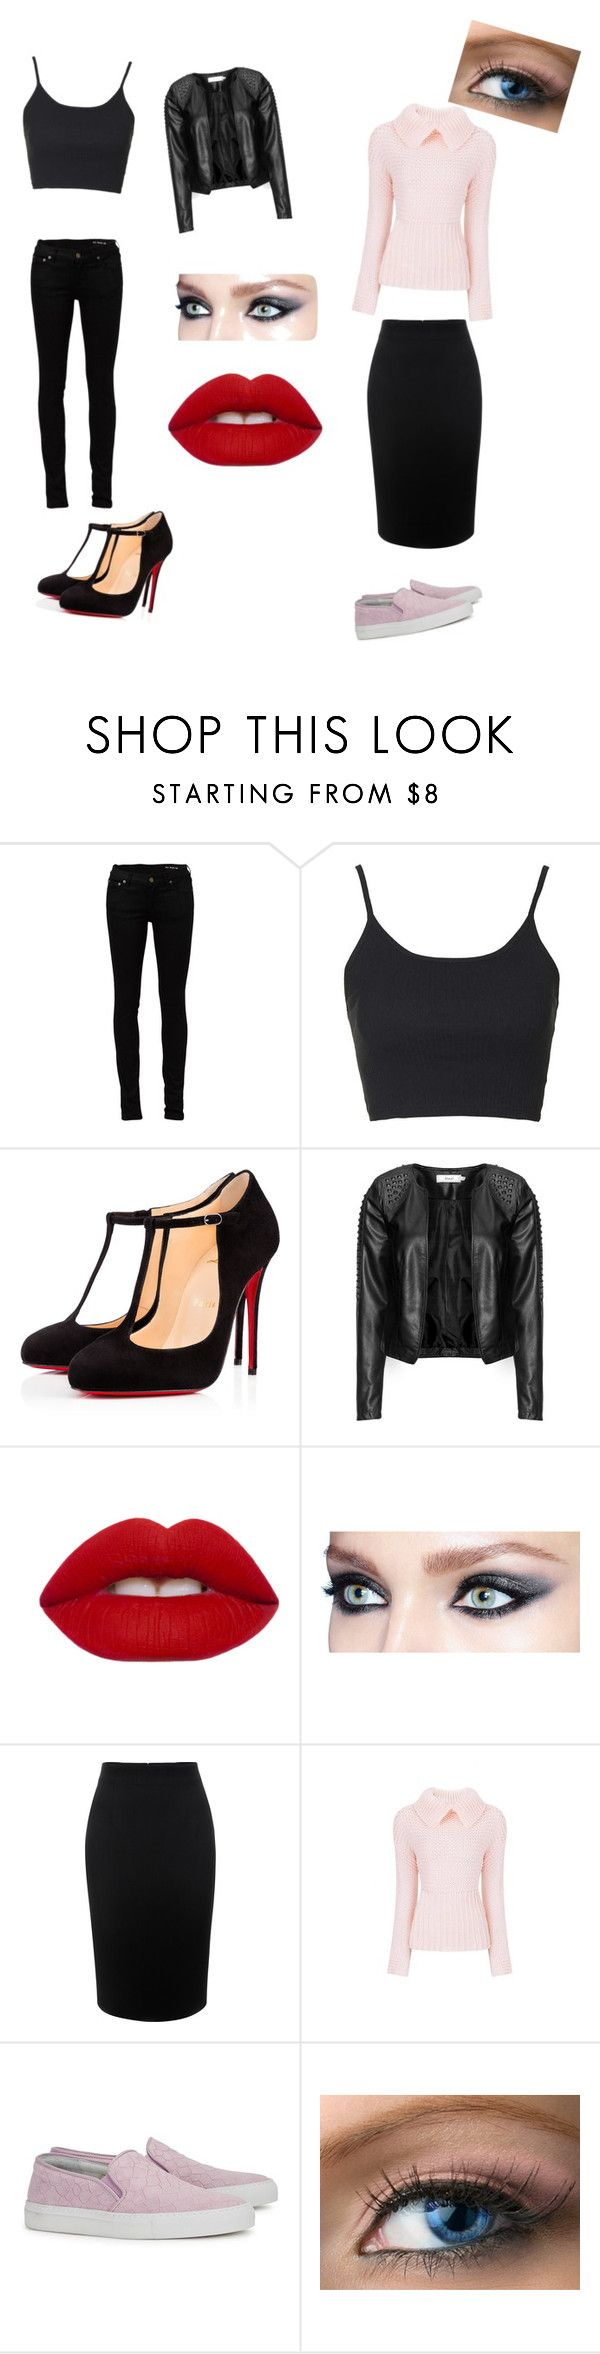 """""""Greasers and socs"""" by alexis-makenzie-liscio on Polyvore featuring Yves Saint Laurent, Topshop, Christian Louboutin, Zizzi, Lime Crime, Alexander McQueen and Axel Arigato"""